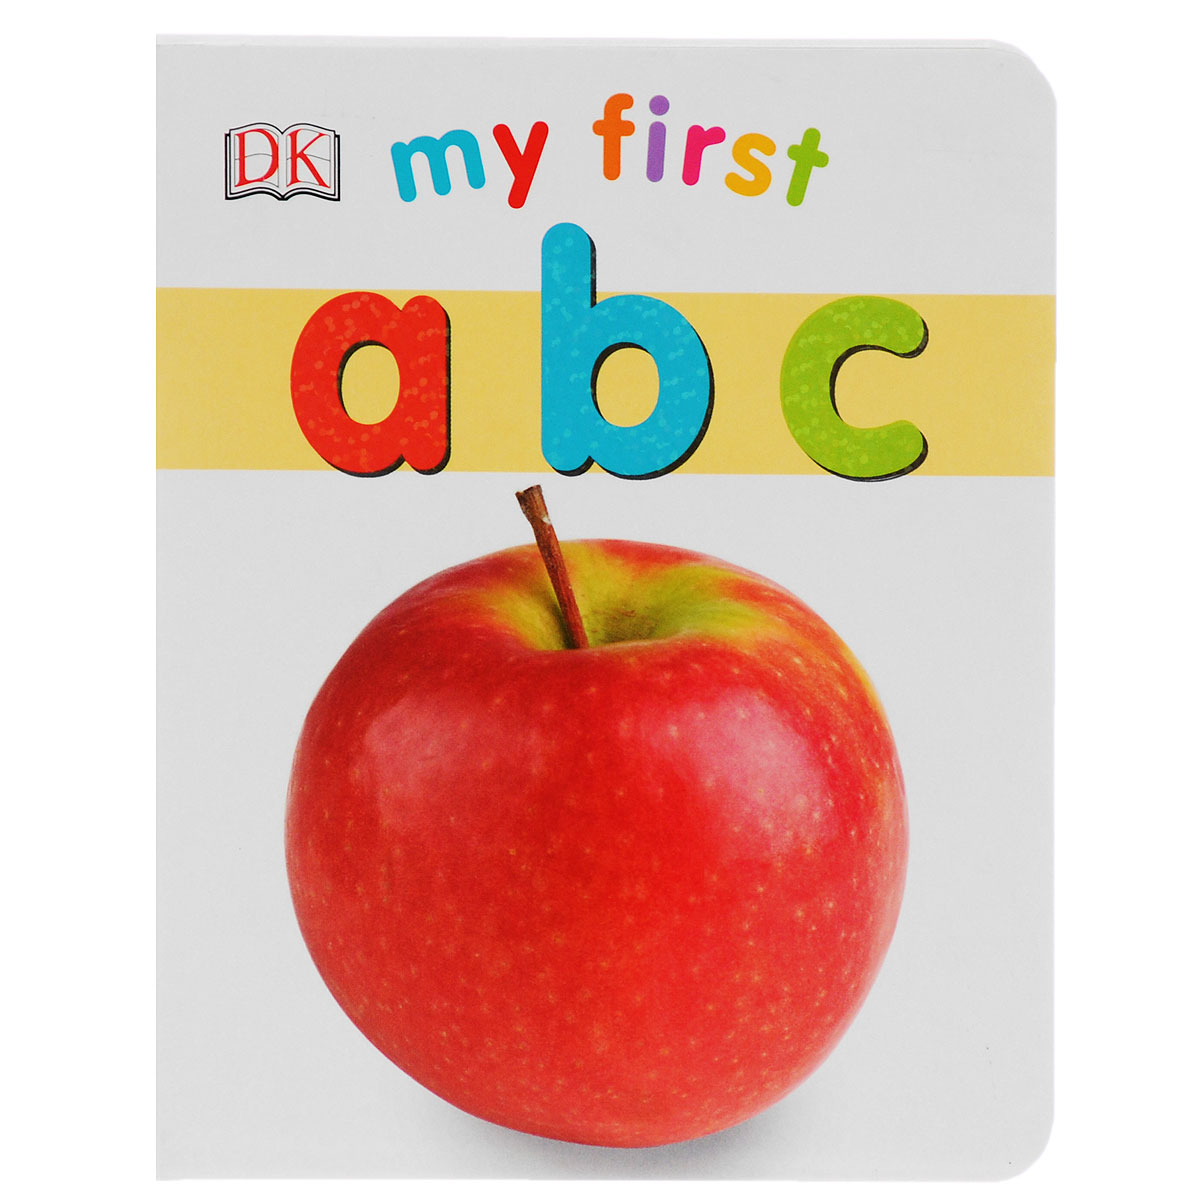 My First: A B C davis sarah sirett dawn my first learning library box my first world abc numbers hb